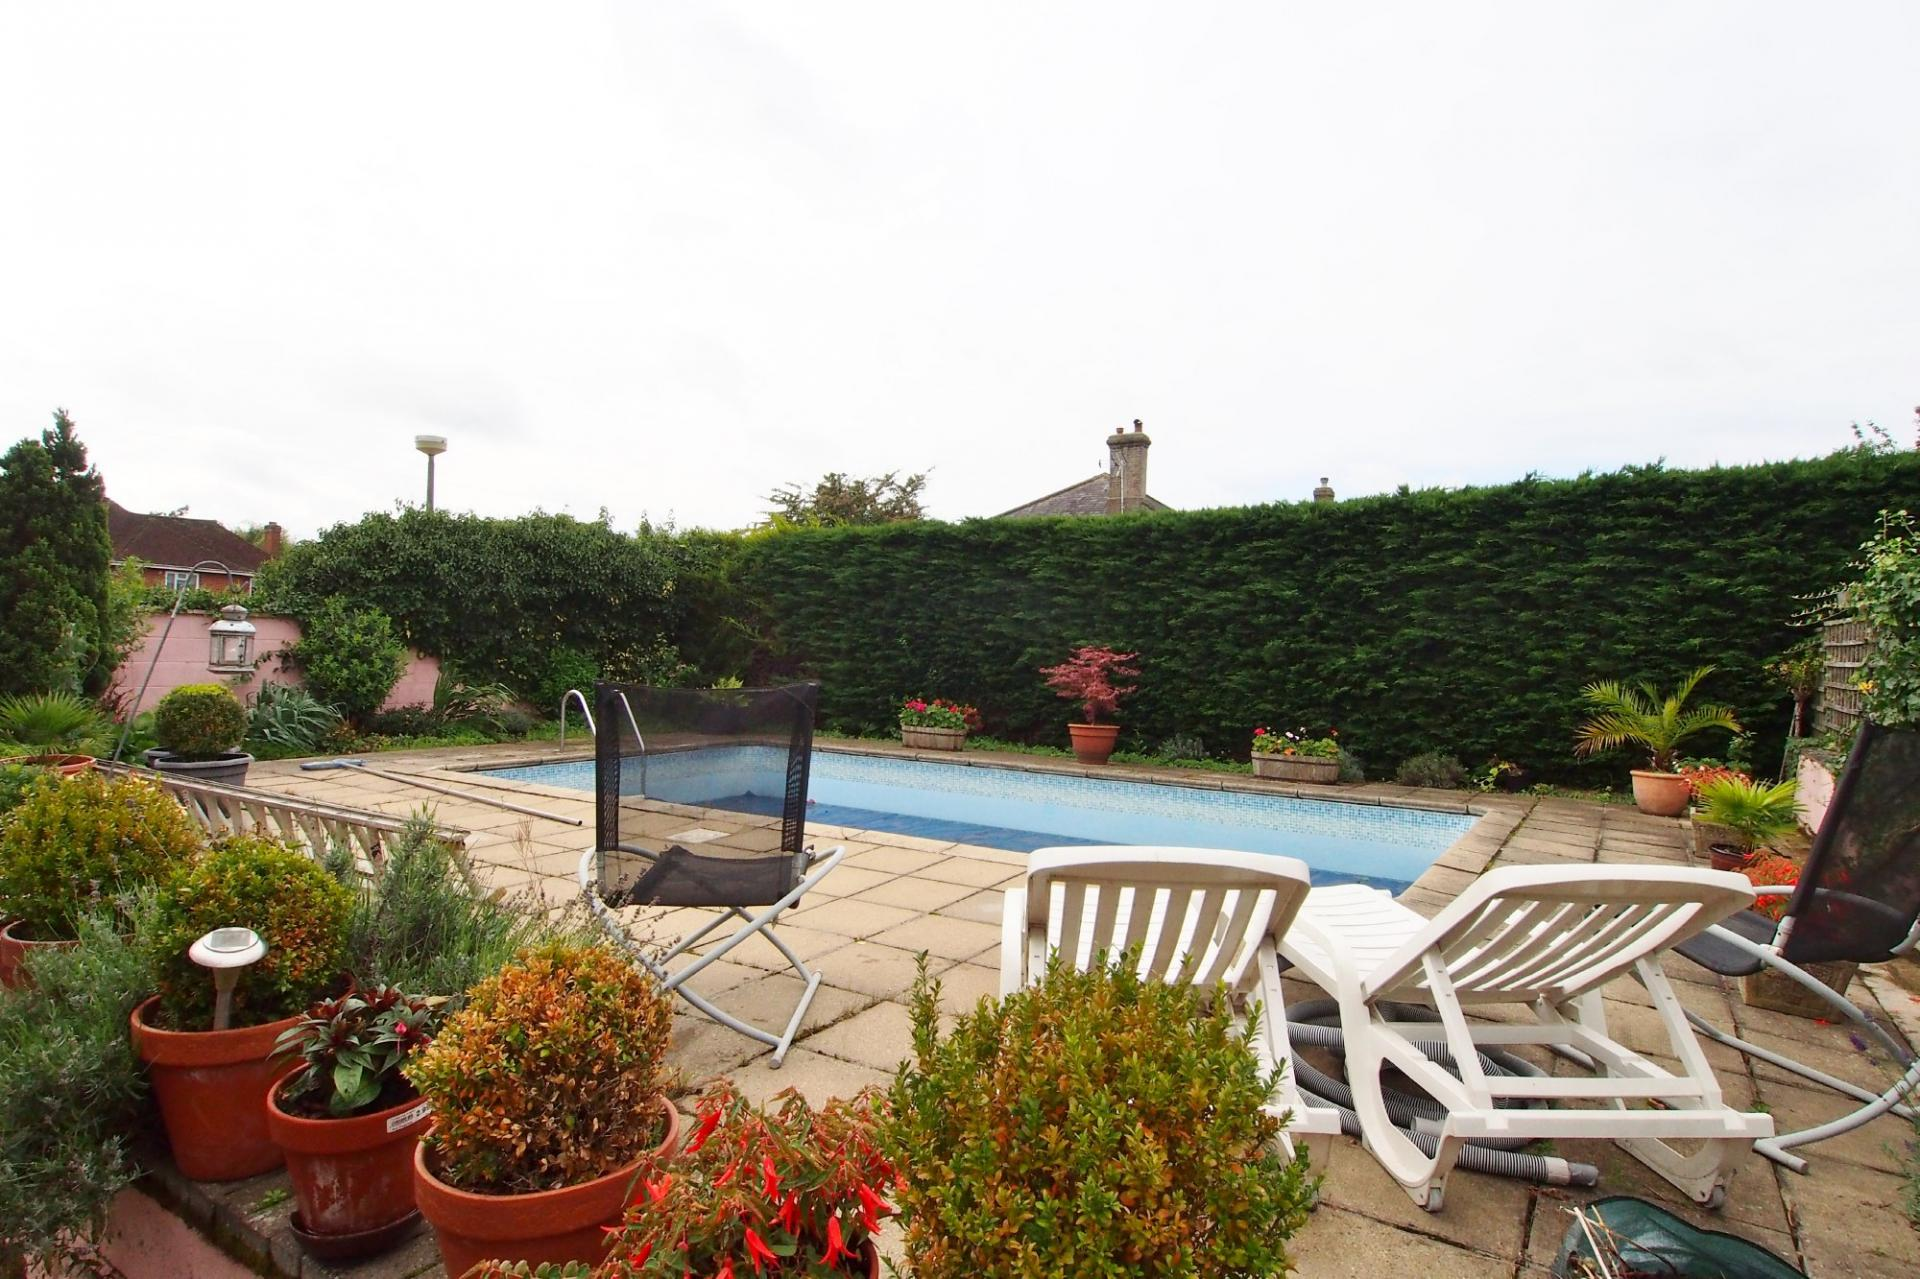 4 Bedroom Semi Detached House For Sale In Attleborough